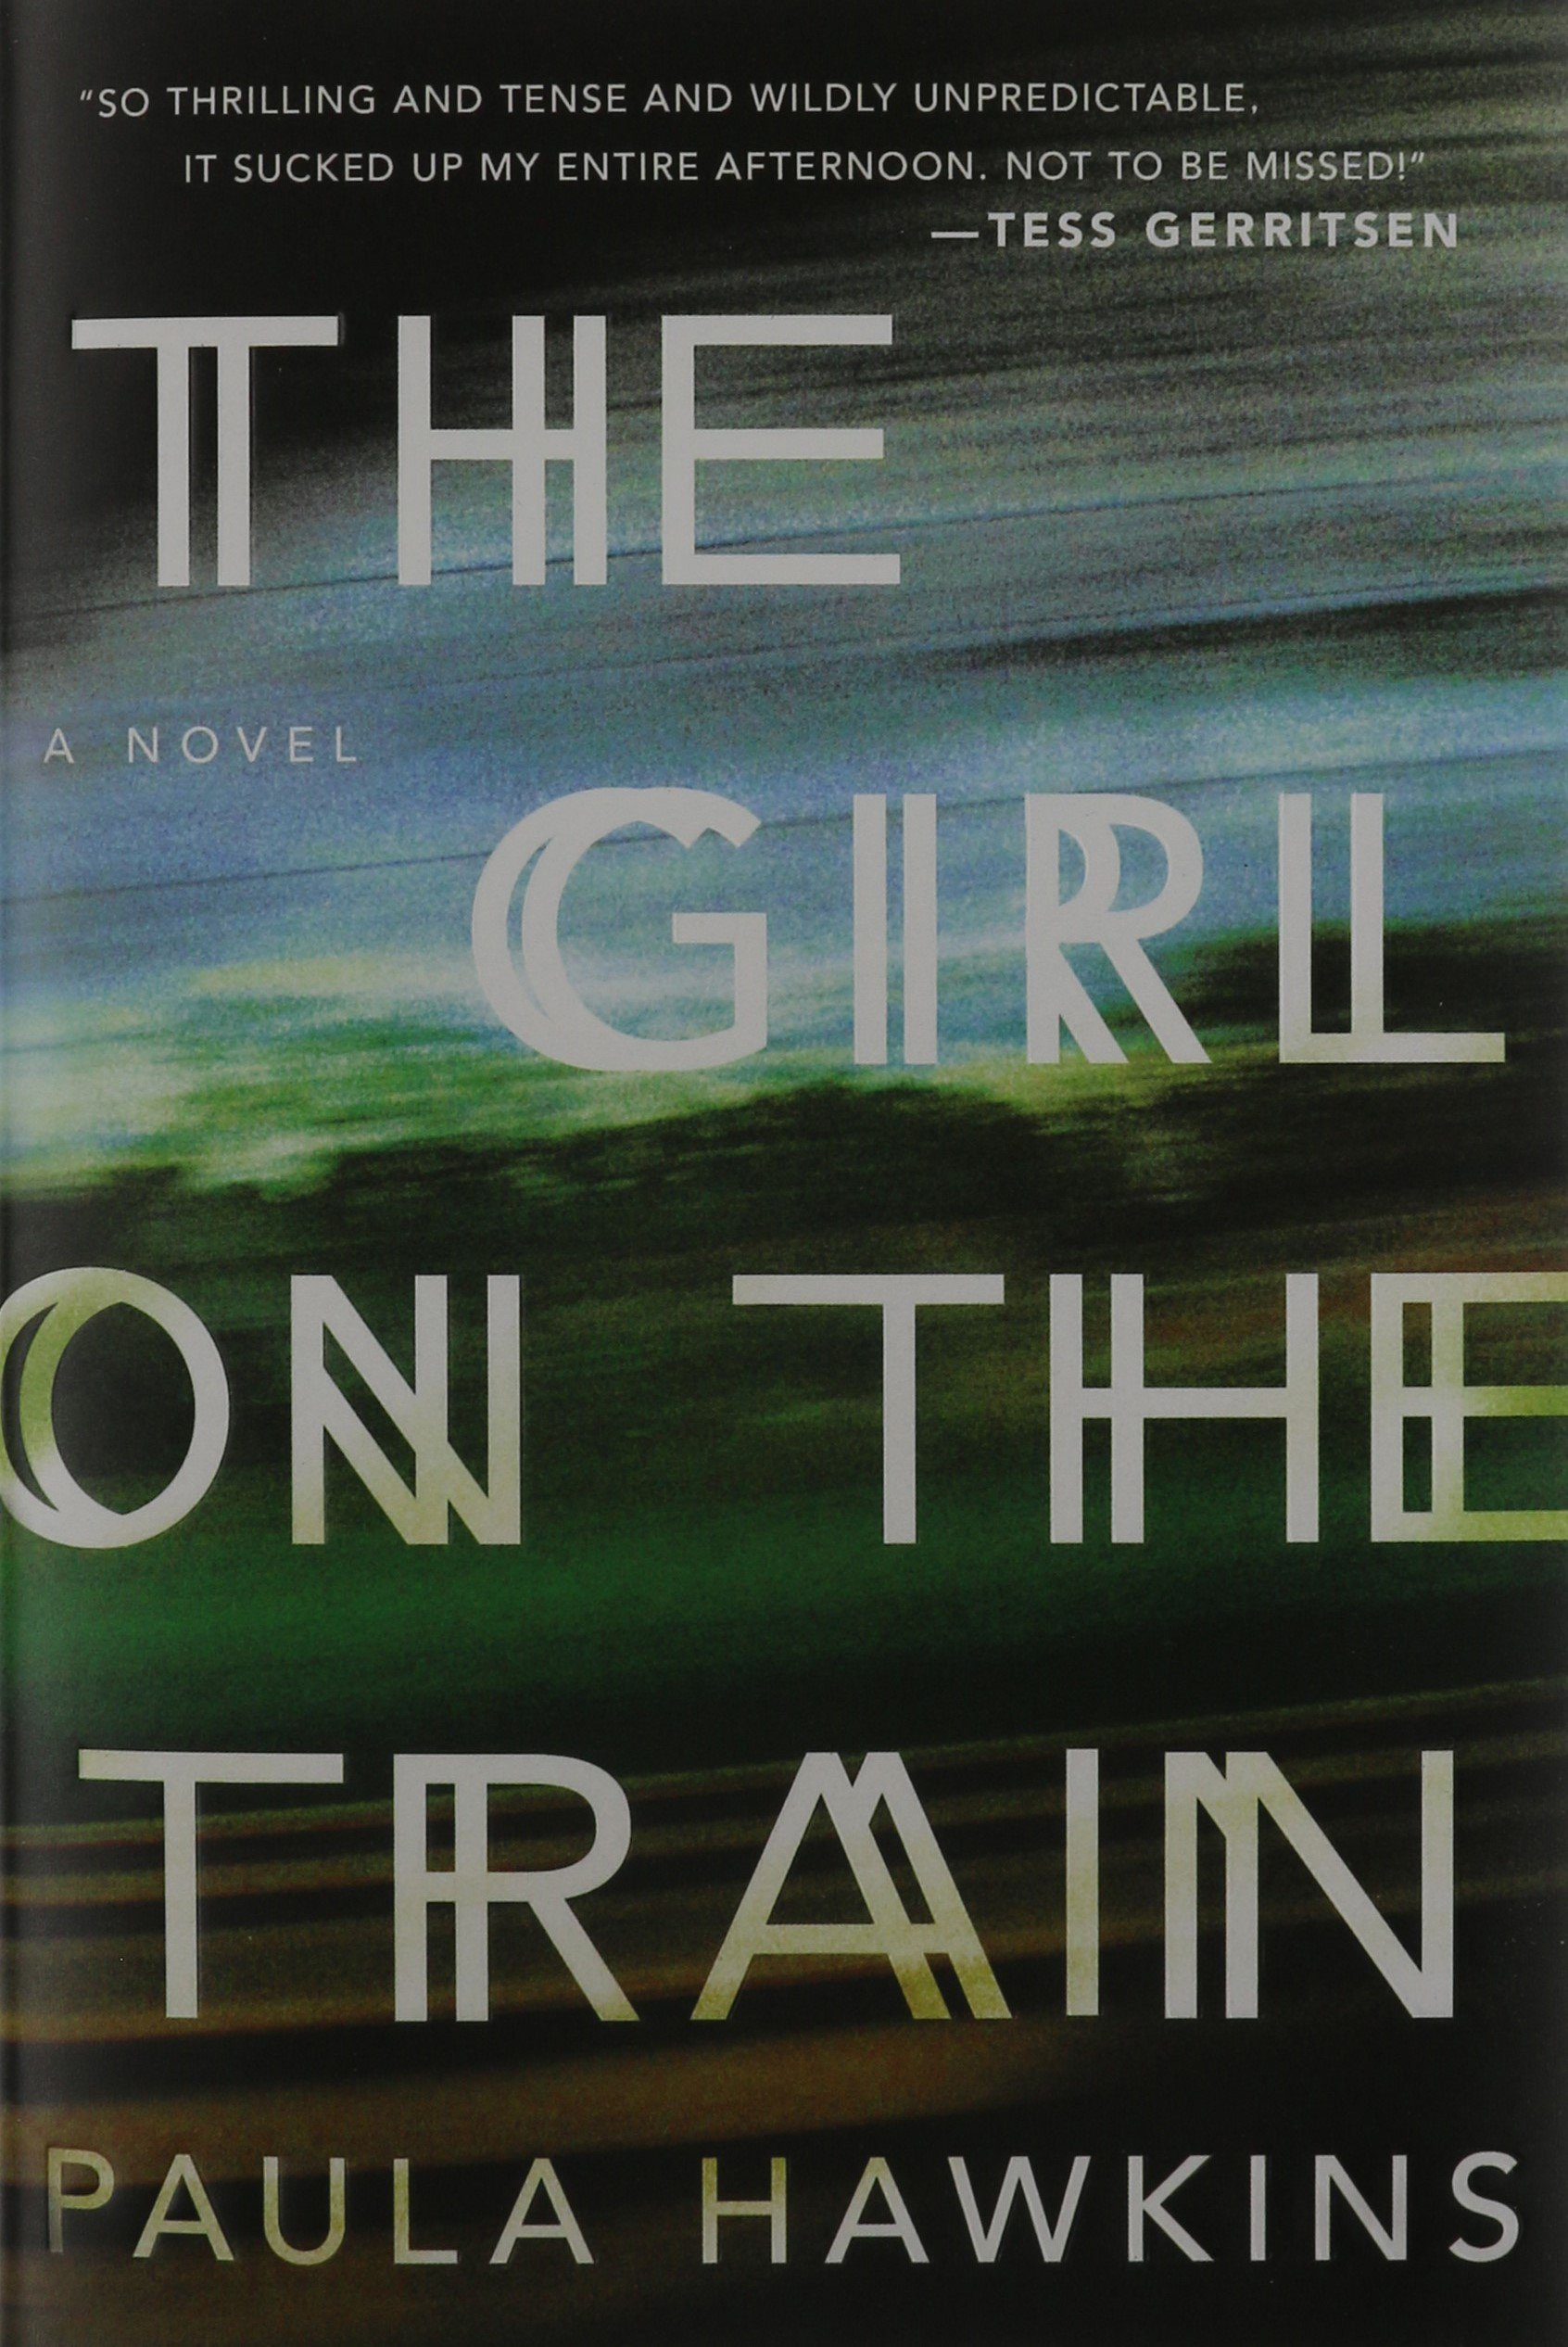 Paula Hawkins - The Girl on the Train free download